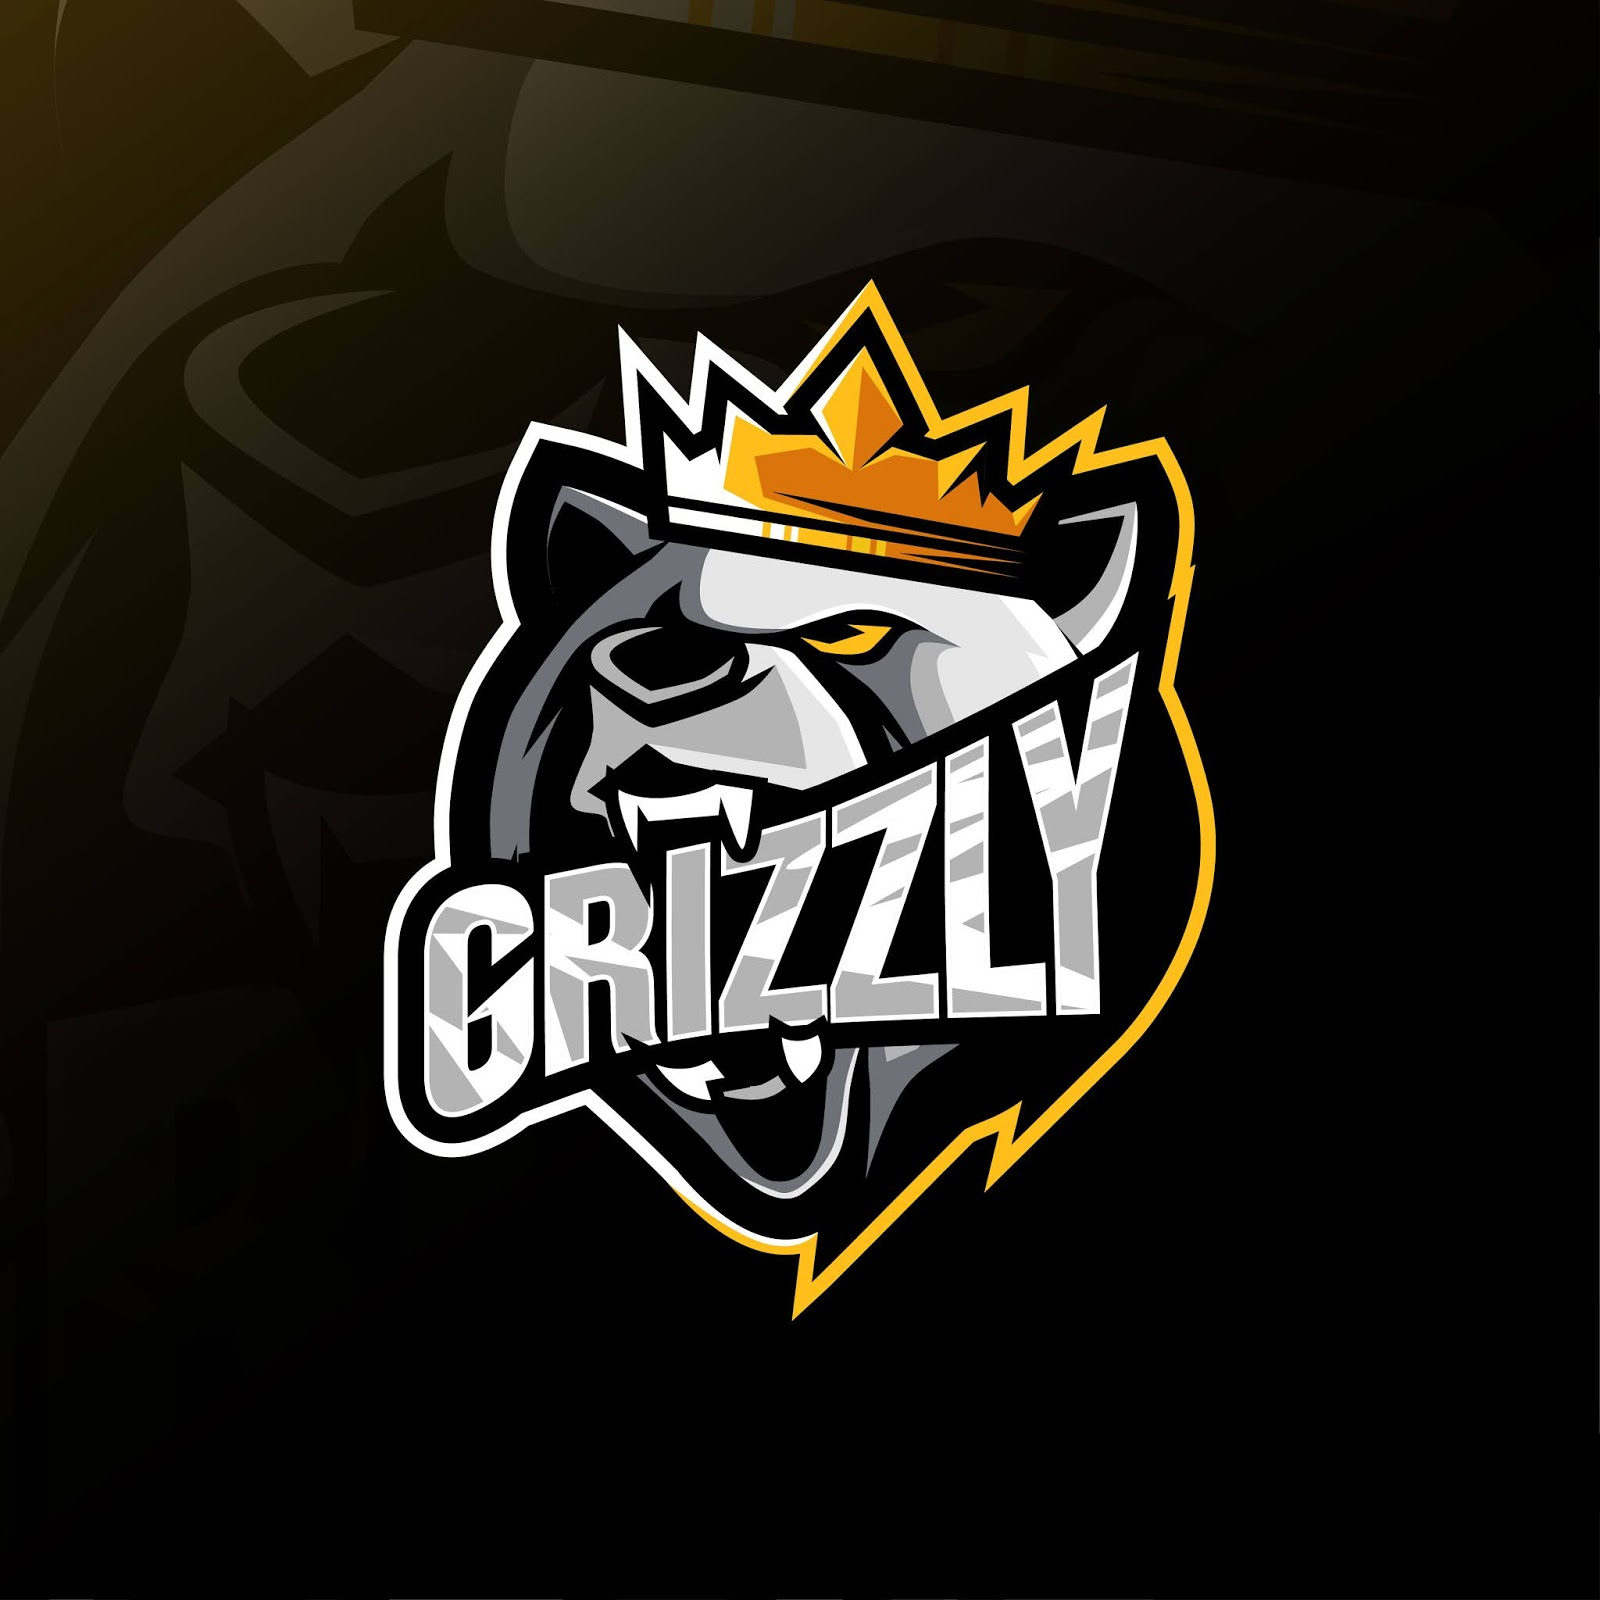 King Grizzly Mascot Logo Free Download Vector CDR, AI, EPS and PNG Formats